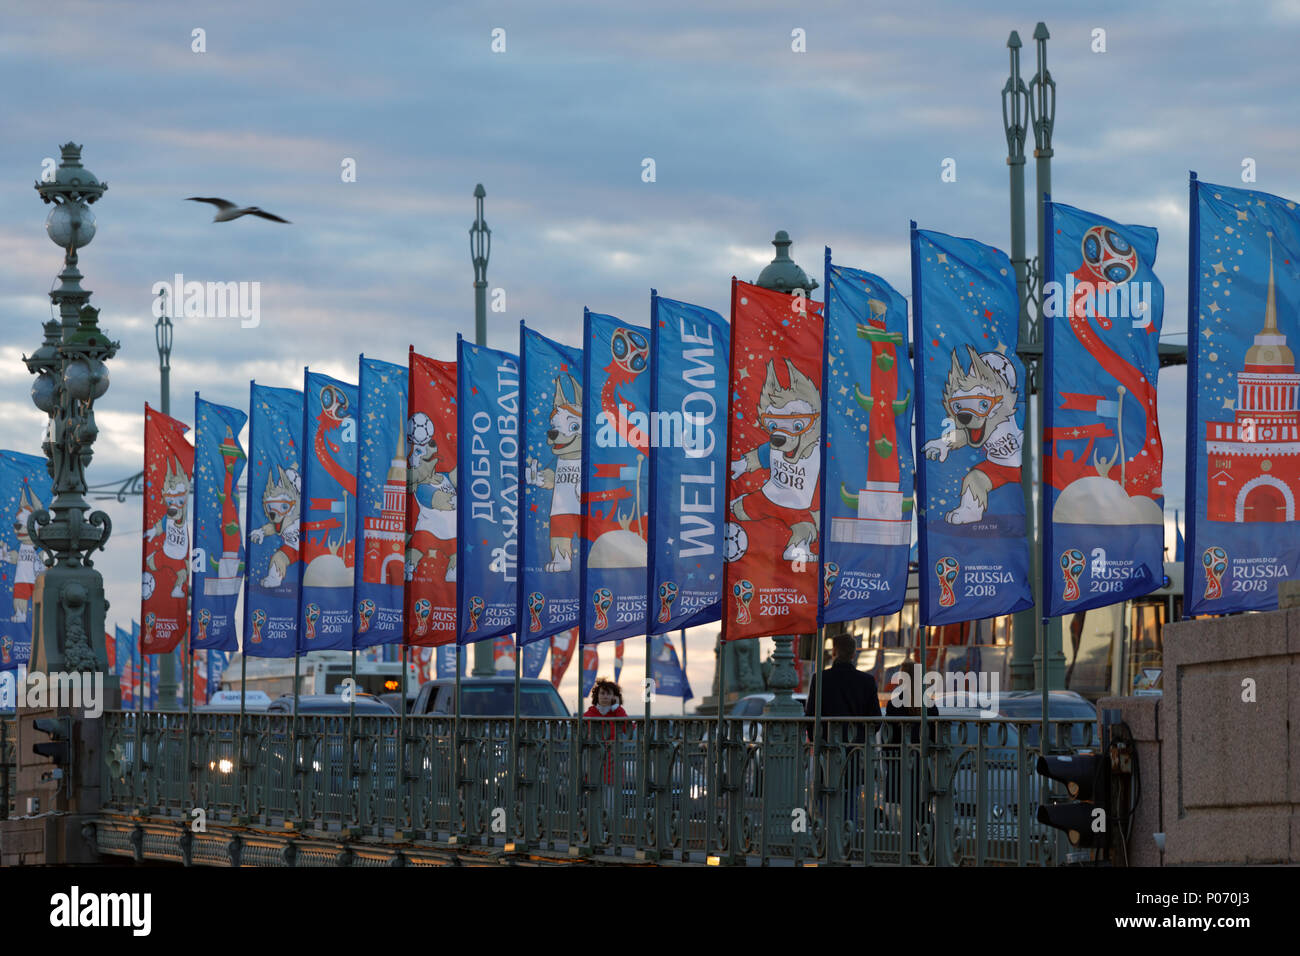 St. Petersburg, Russia, 8th June, 2018. Trinity bridge decorated by banners with Zabivaka, the mascot of FIFA World Cup 2018. Saint-Petersburg will host eight matches of World Cup first of which will be held on June 15 Credit: StockphotoVideo/Alamy Live News - Stock Image